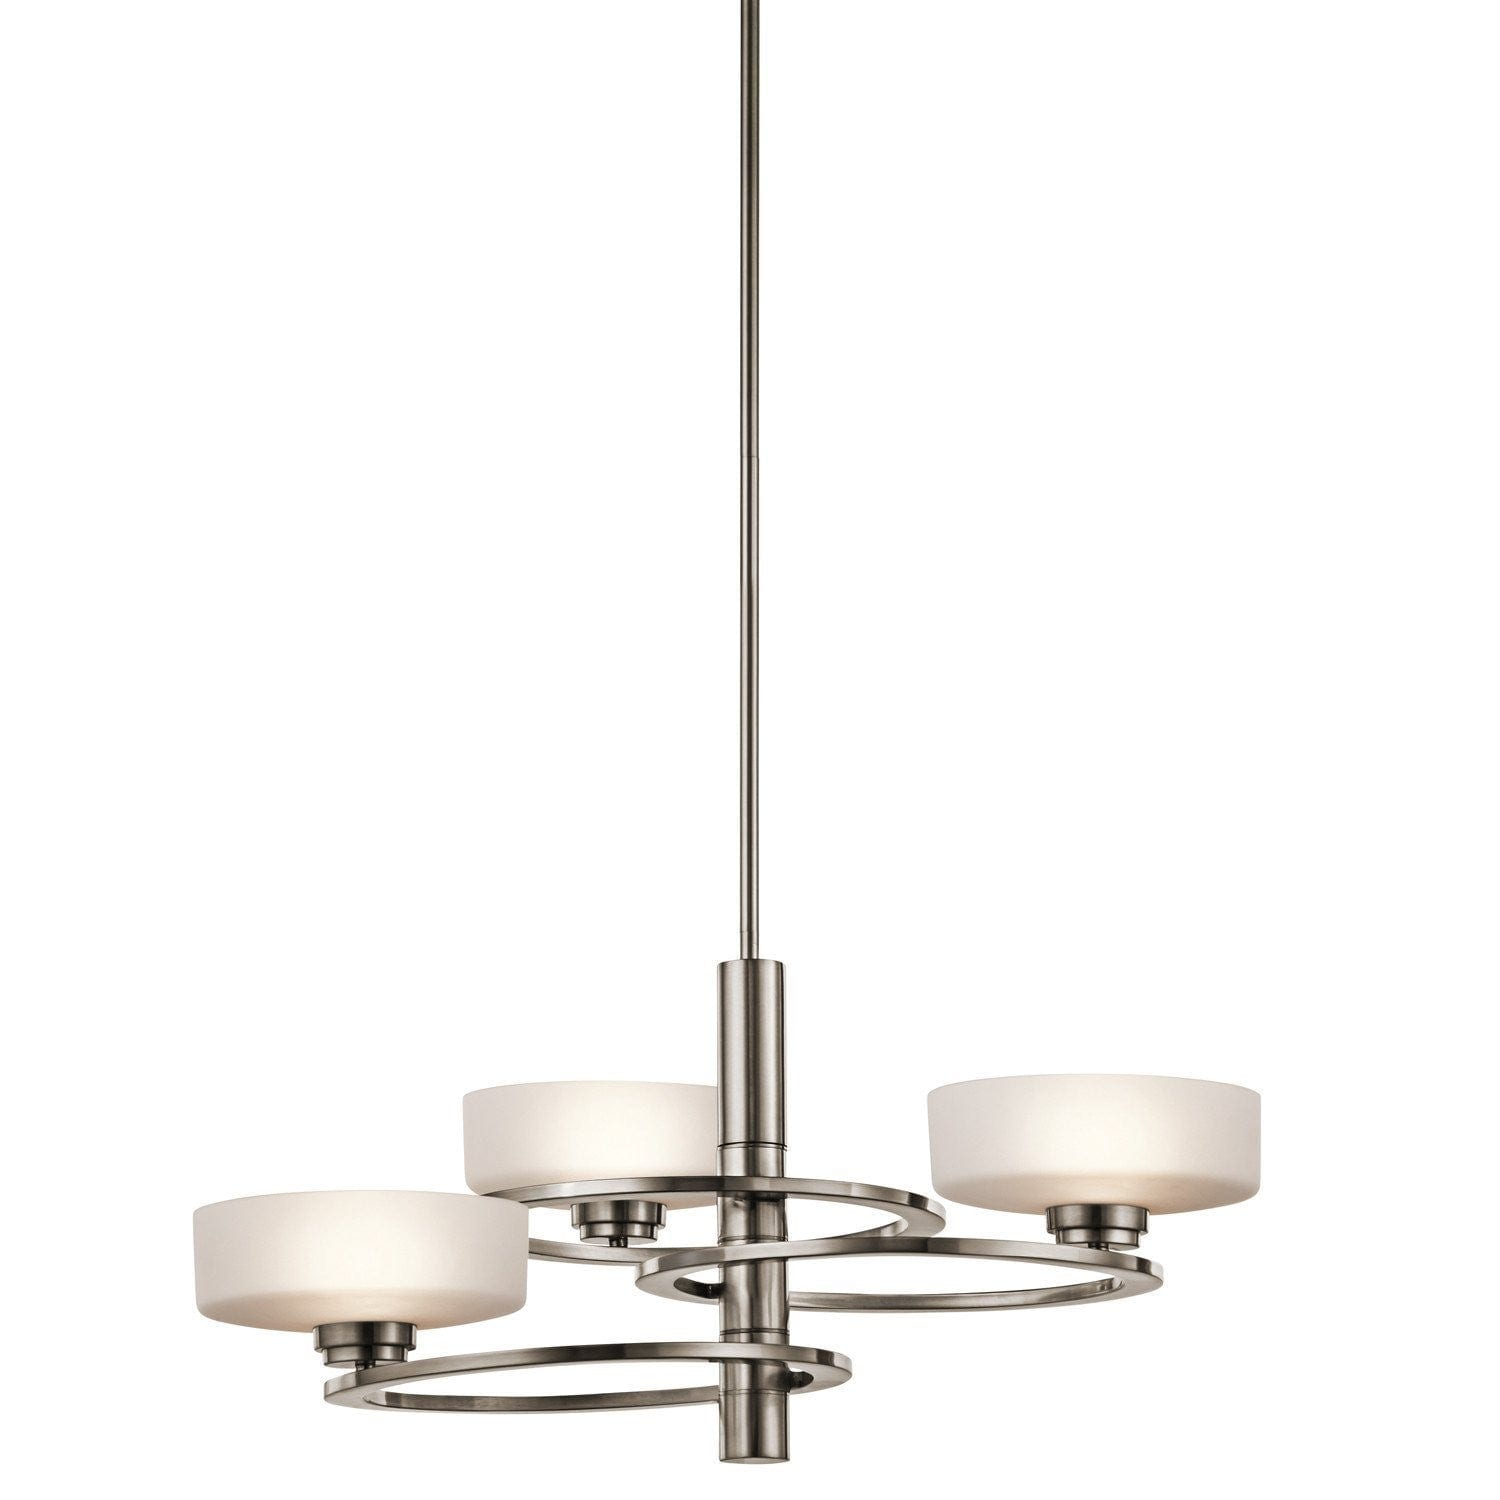 Kichler Aleeka Classic Pewter Finish 3 Light Chandelier KL/ALEEKA3